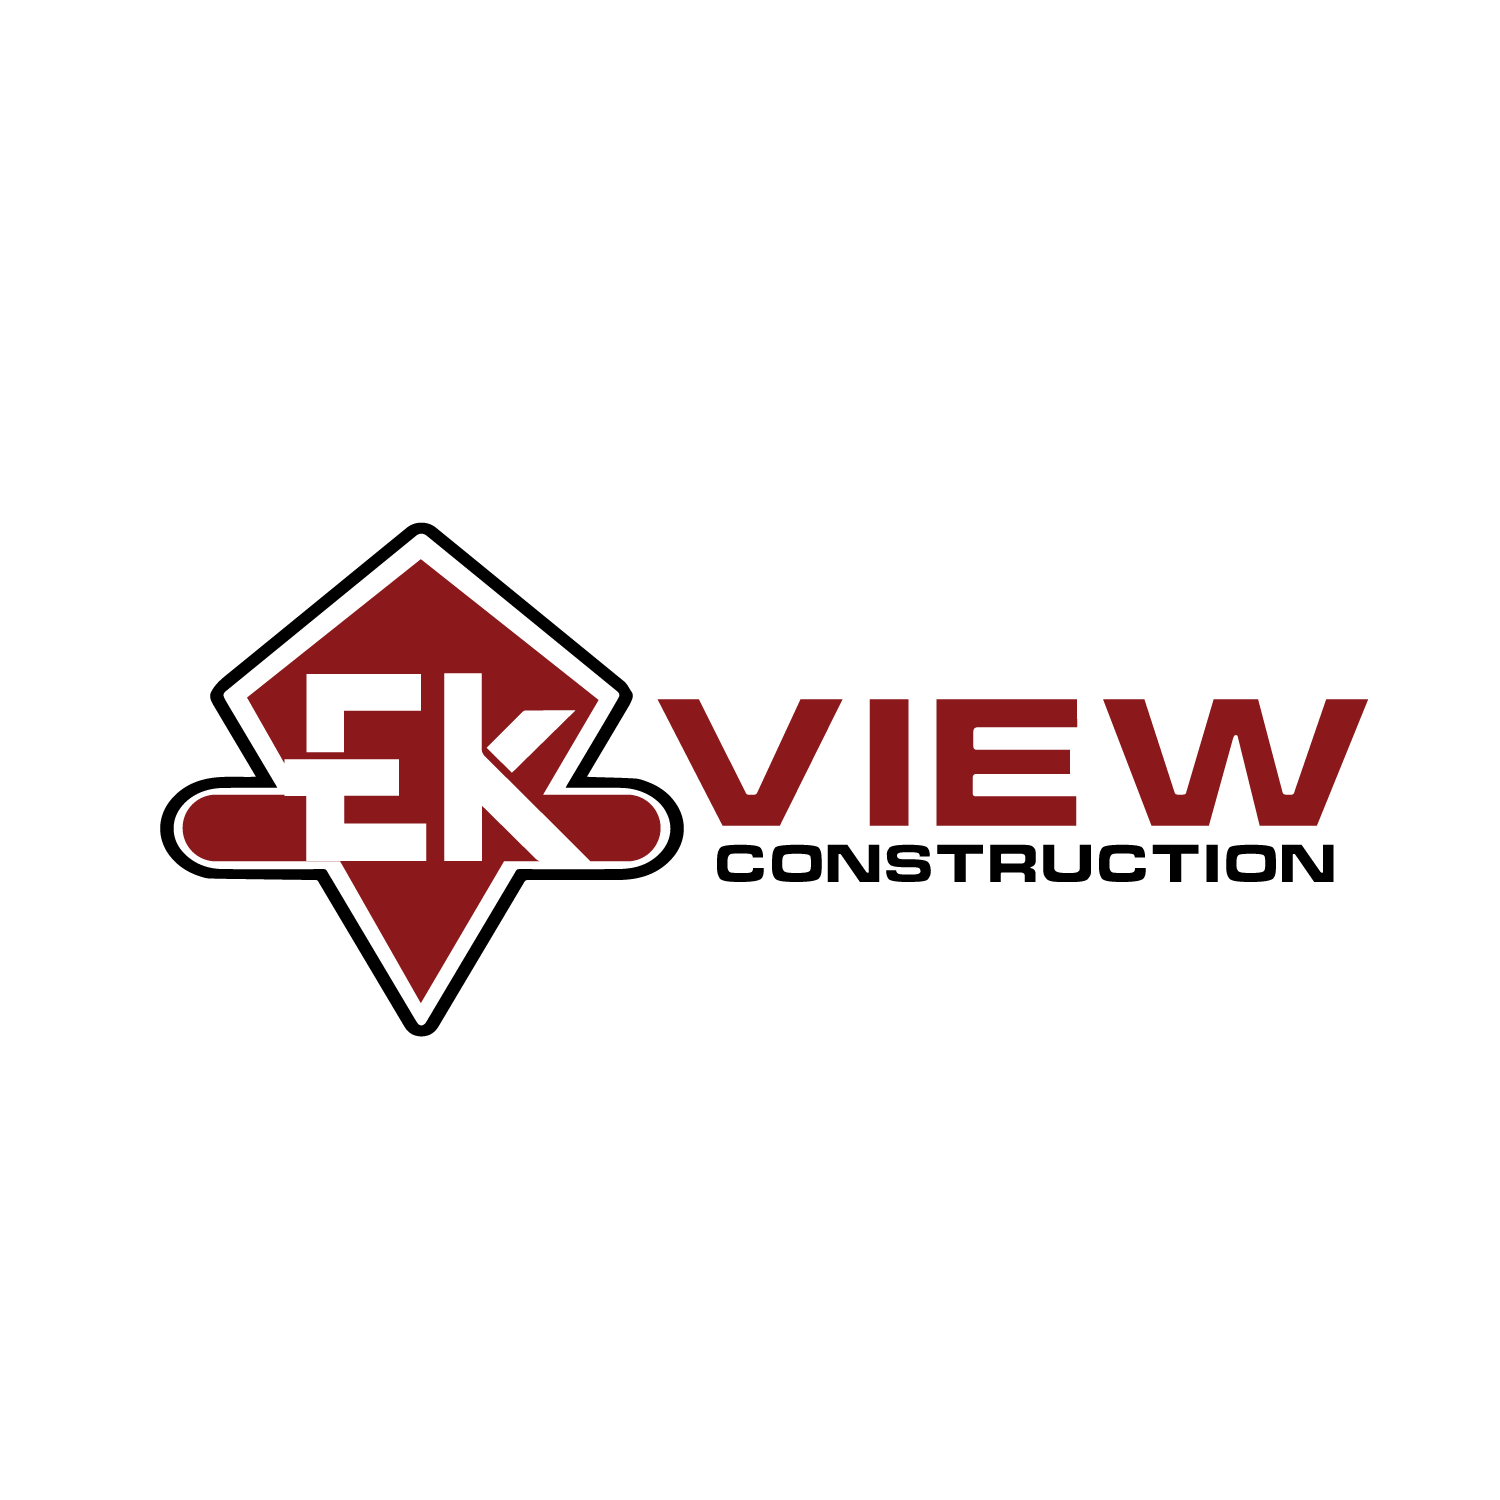 E.K. View Construction